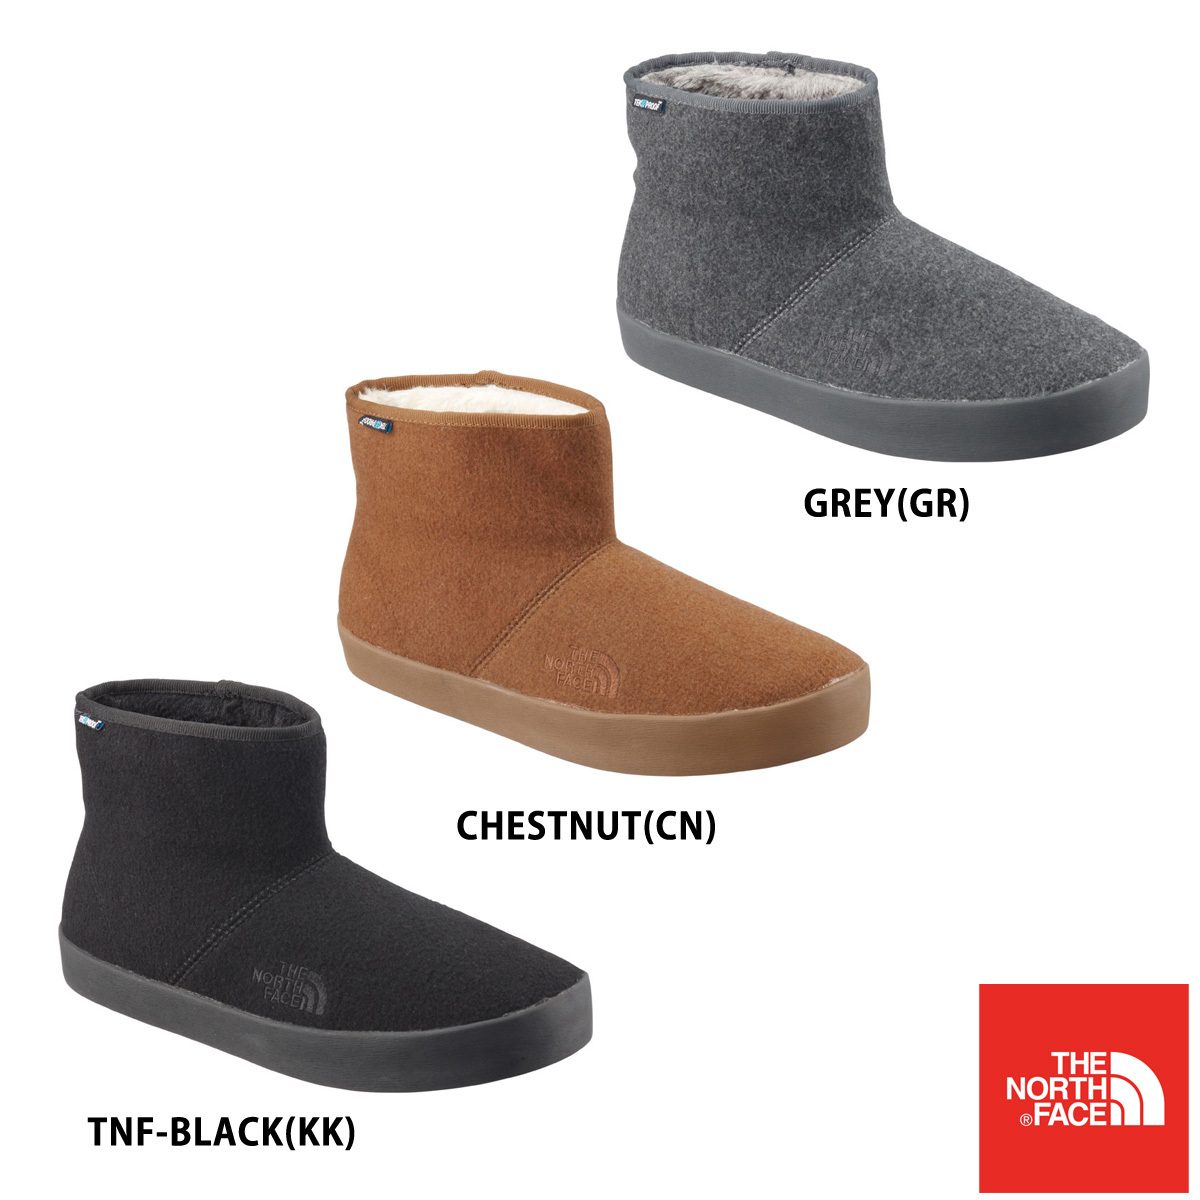 THE NORTH FACE WINTER CAMP BOOTIE III SHORT ノースフェイス ウィンター キャンプ ブーツ 3 ショート nf51891